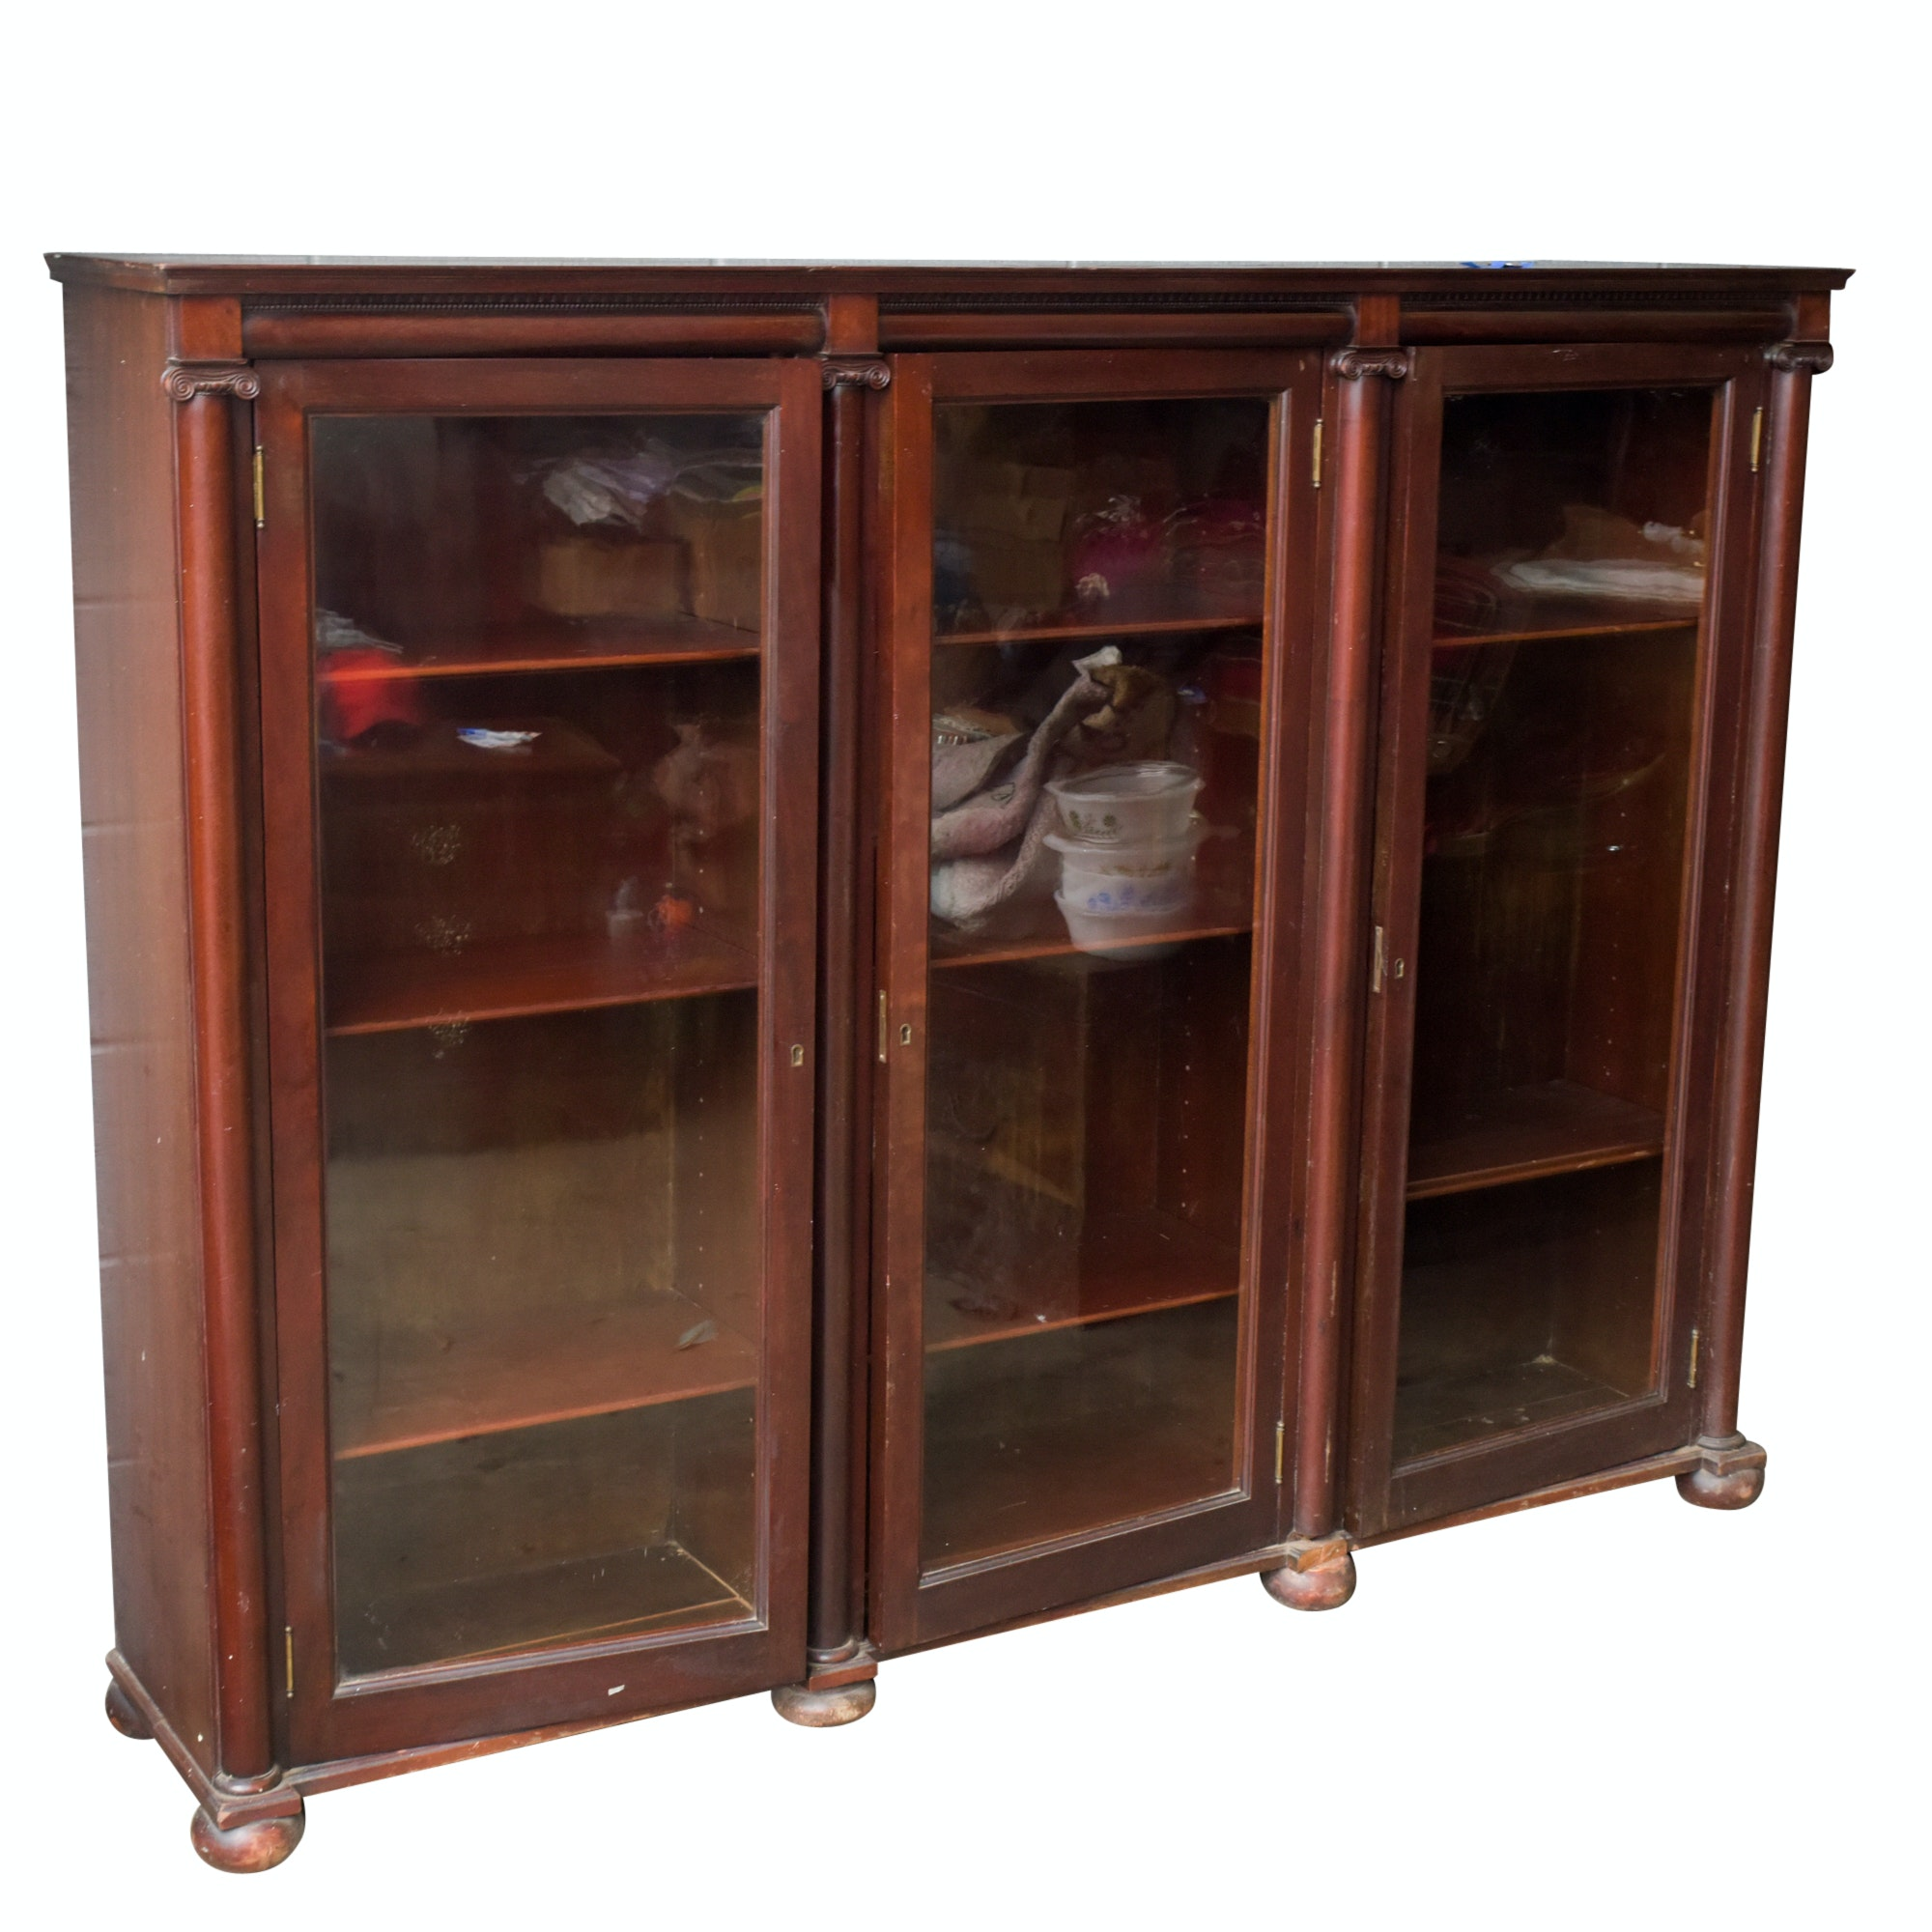 Vintage Neoclassical Style Mahogany Bookcase